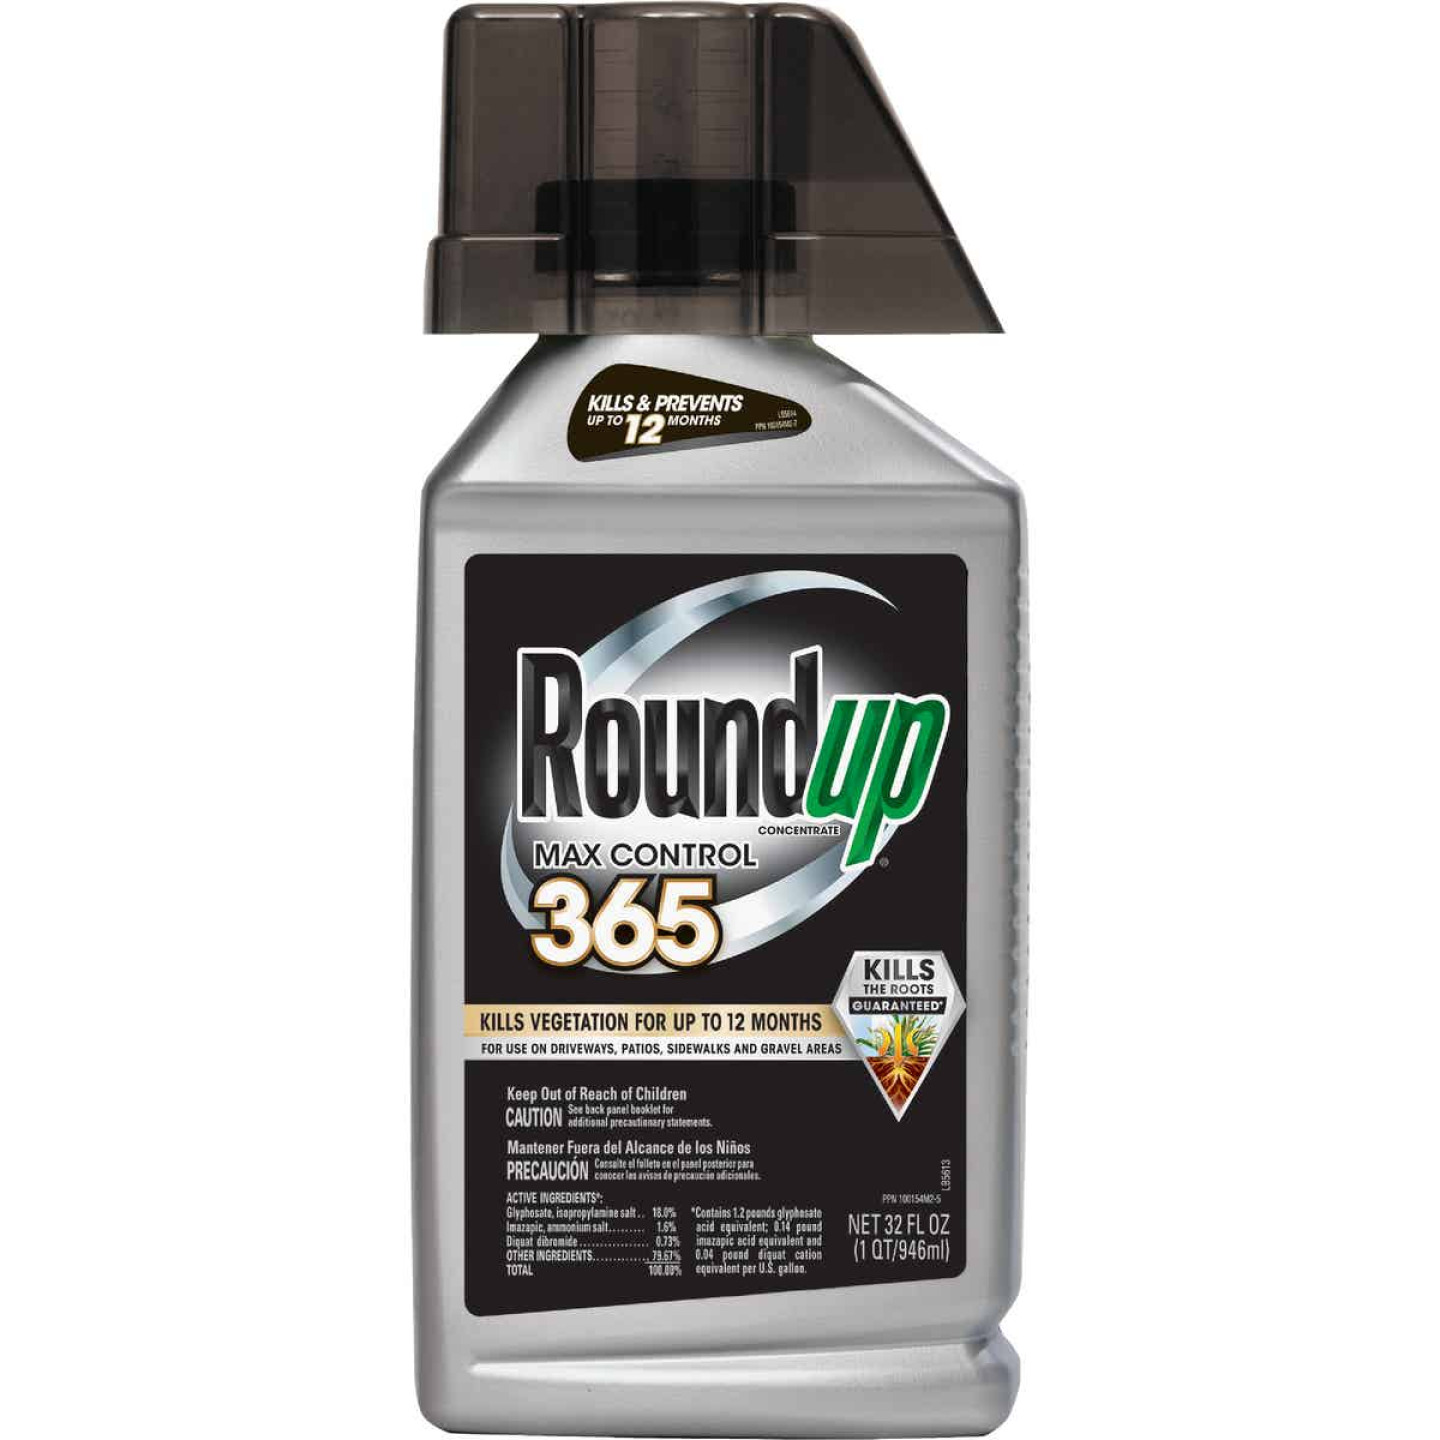 Roundup Max Control 365 1 Qt. Concentrate Vegetation Killer Image 1